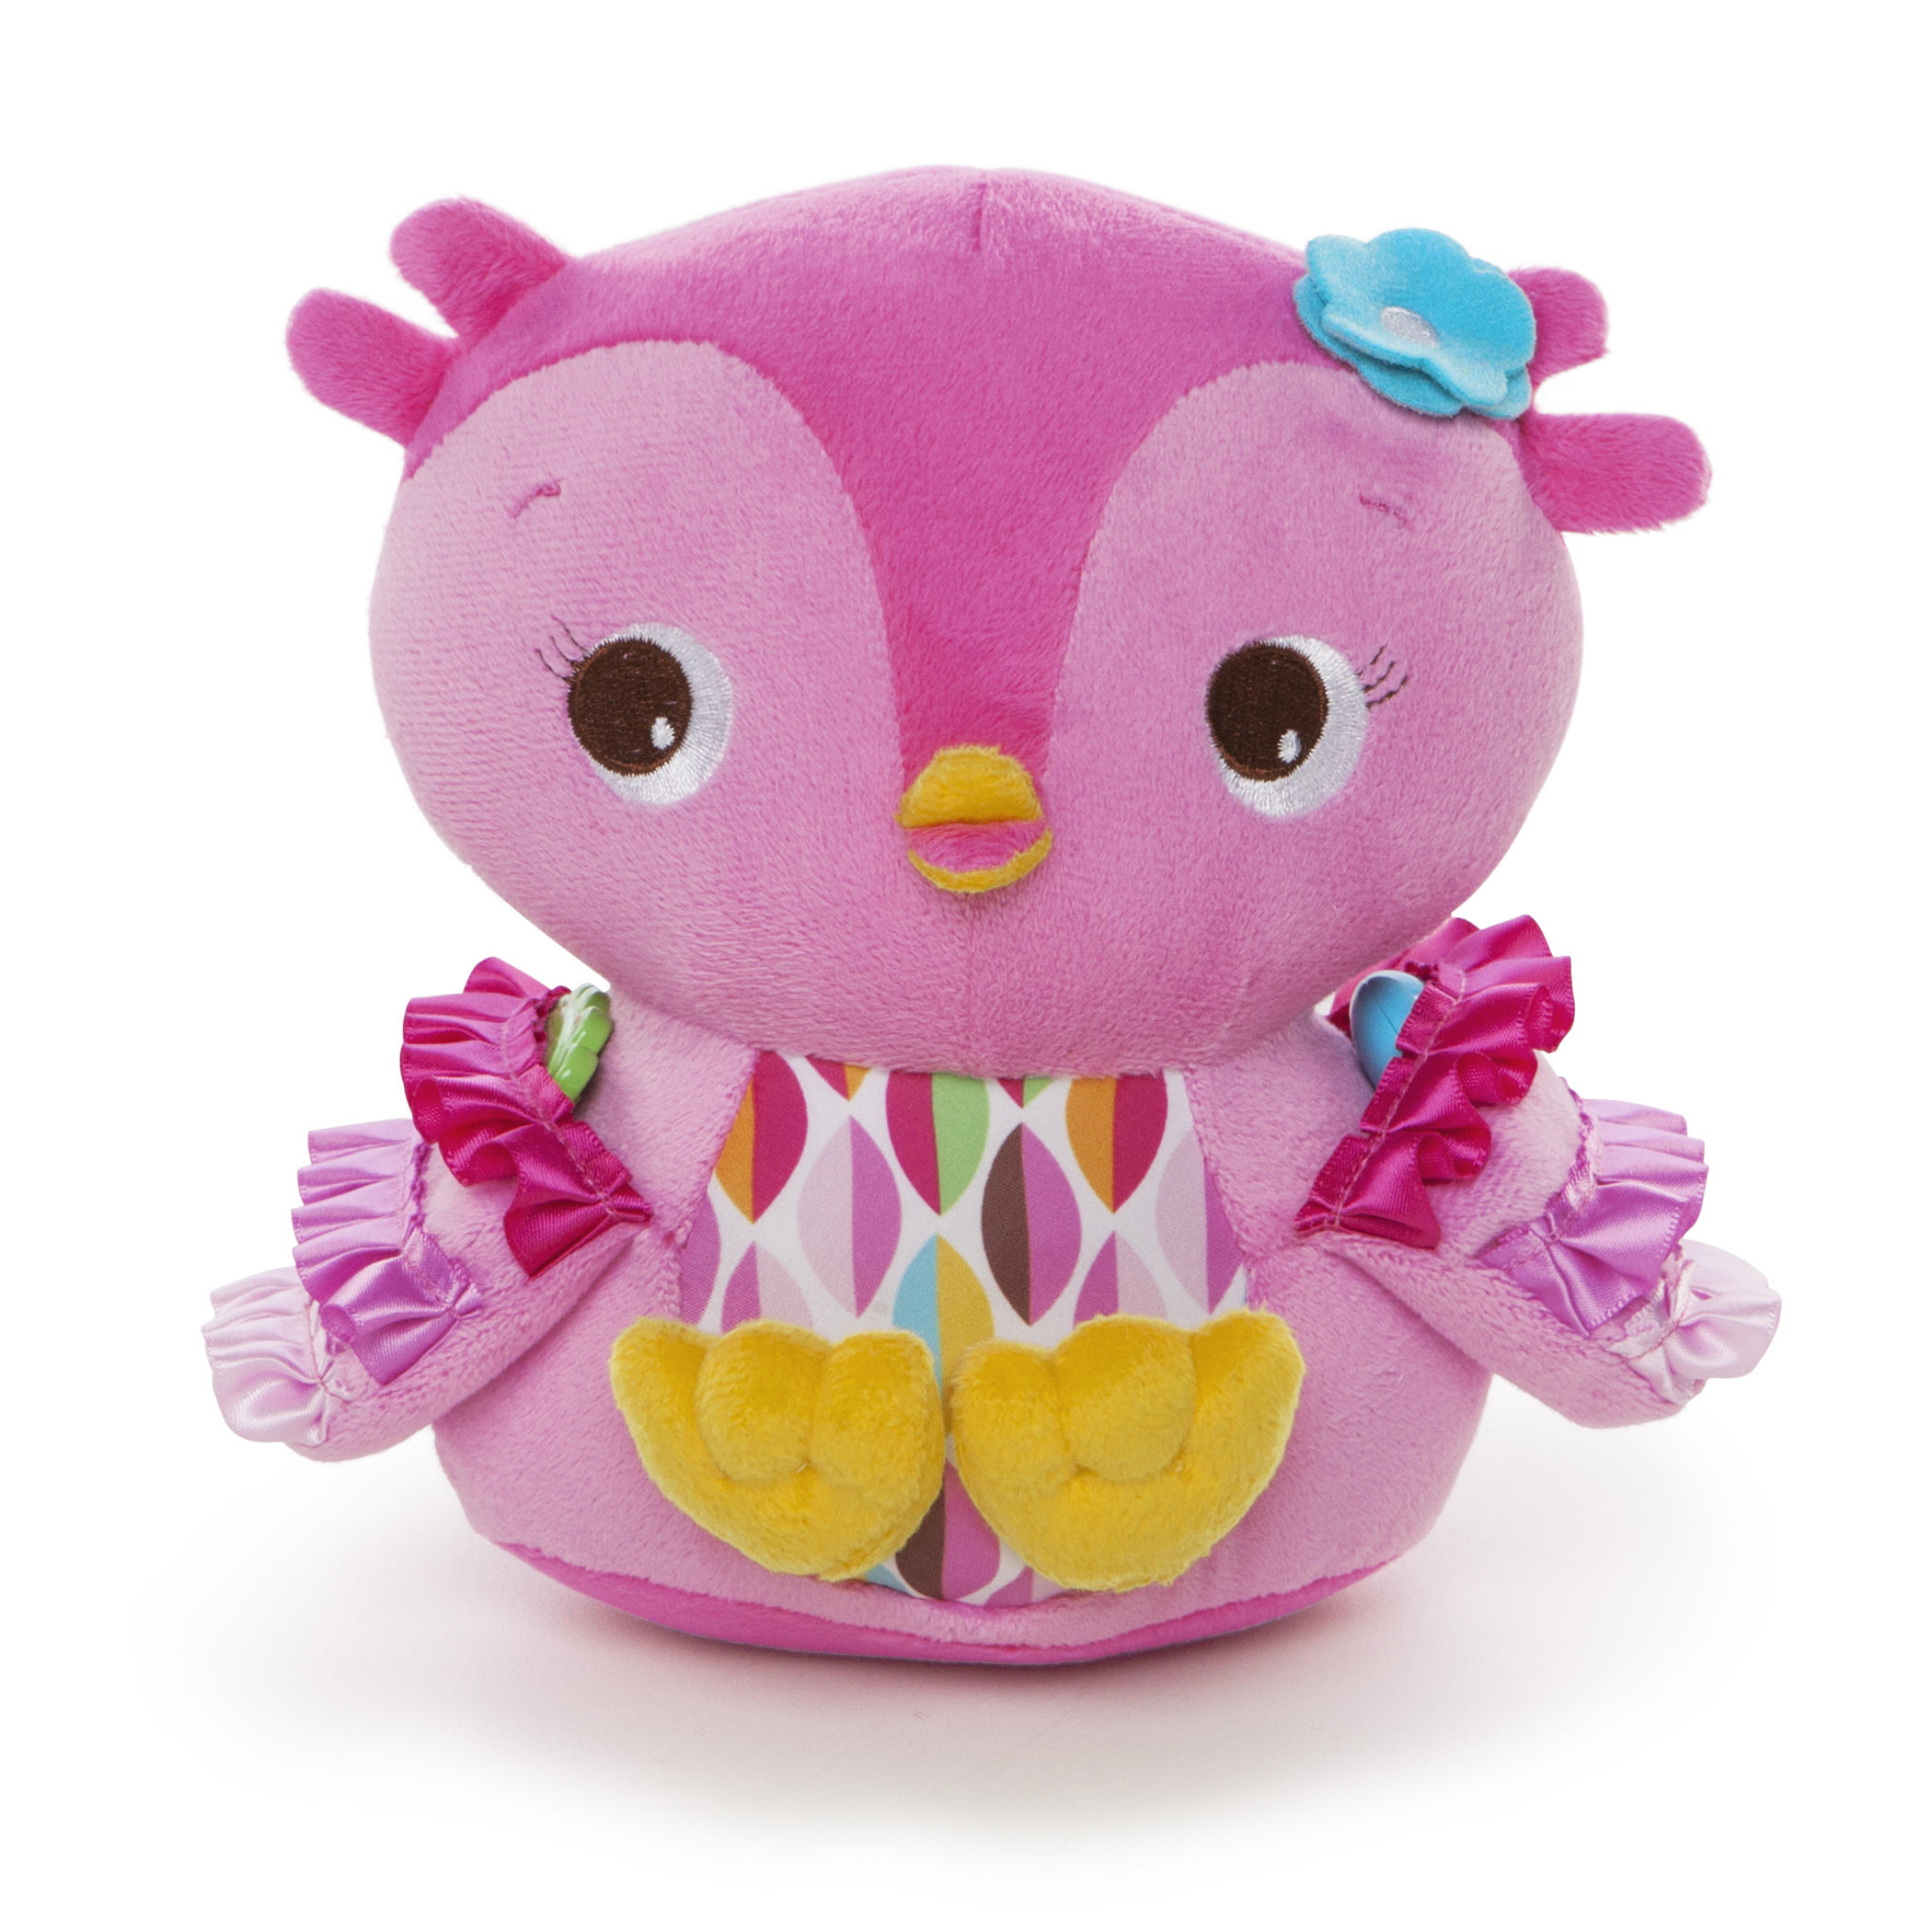 Hootie Cutie™ Plush Toy